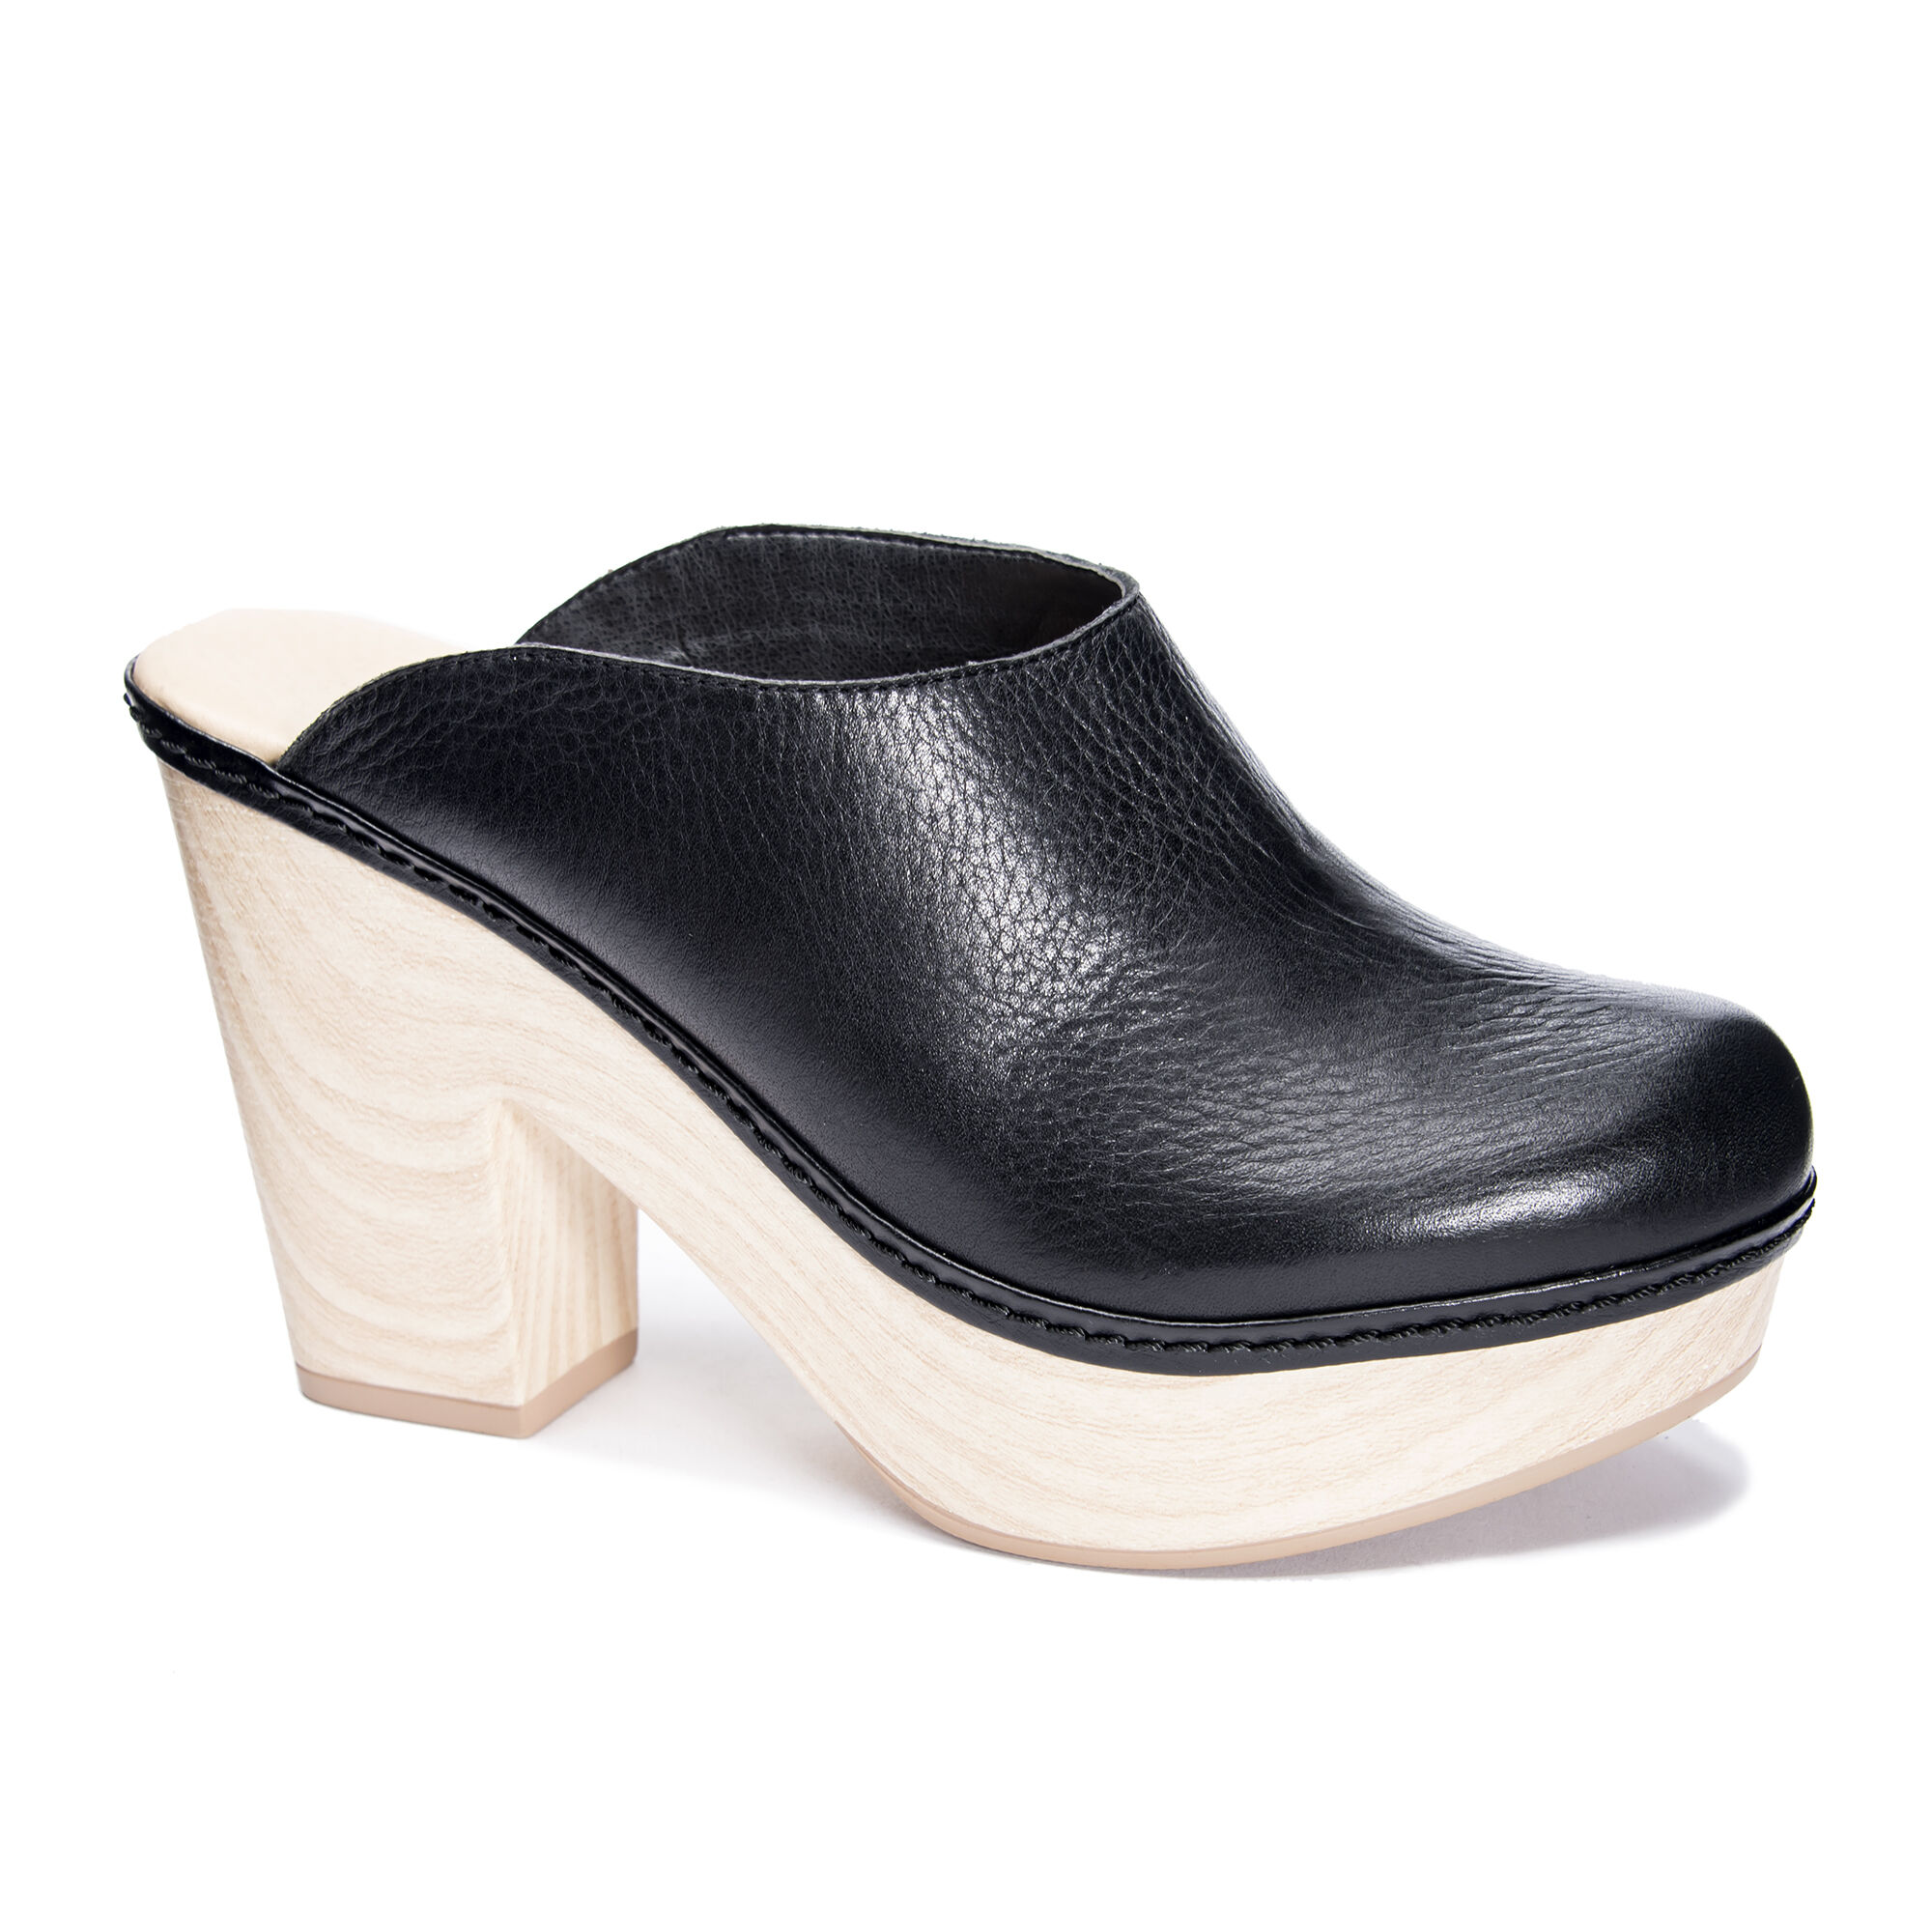 Black Leather Mule Heels   Chinese Laundry